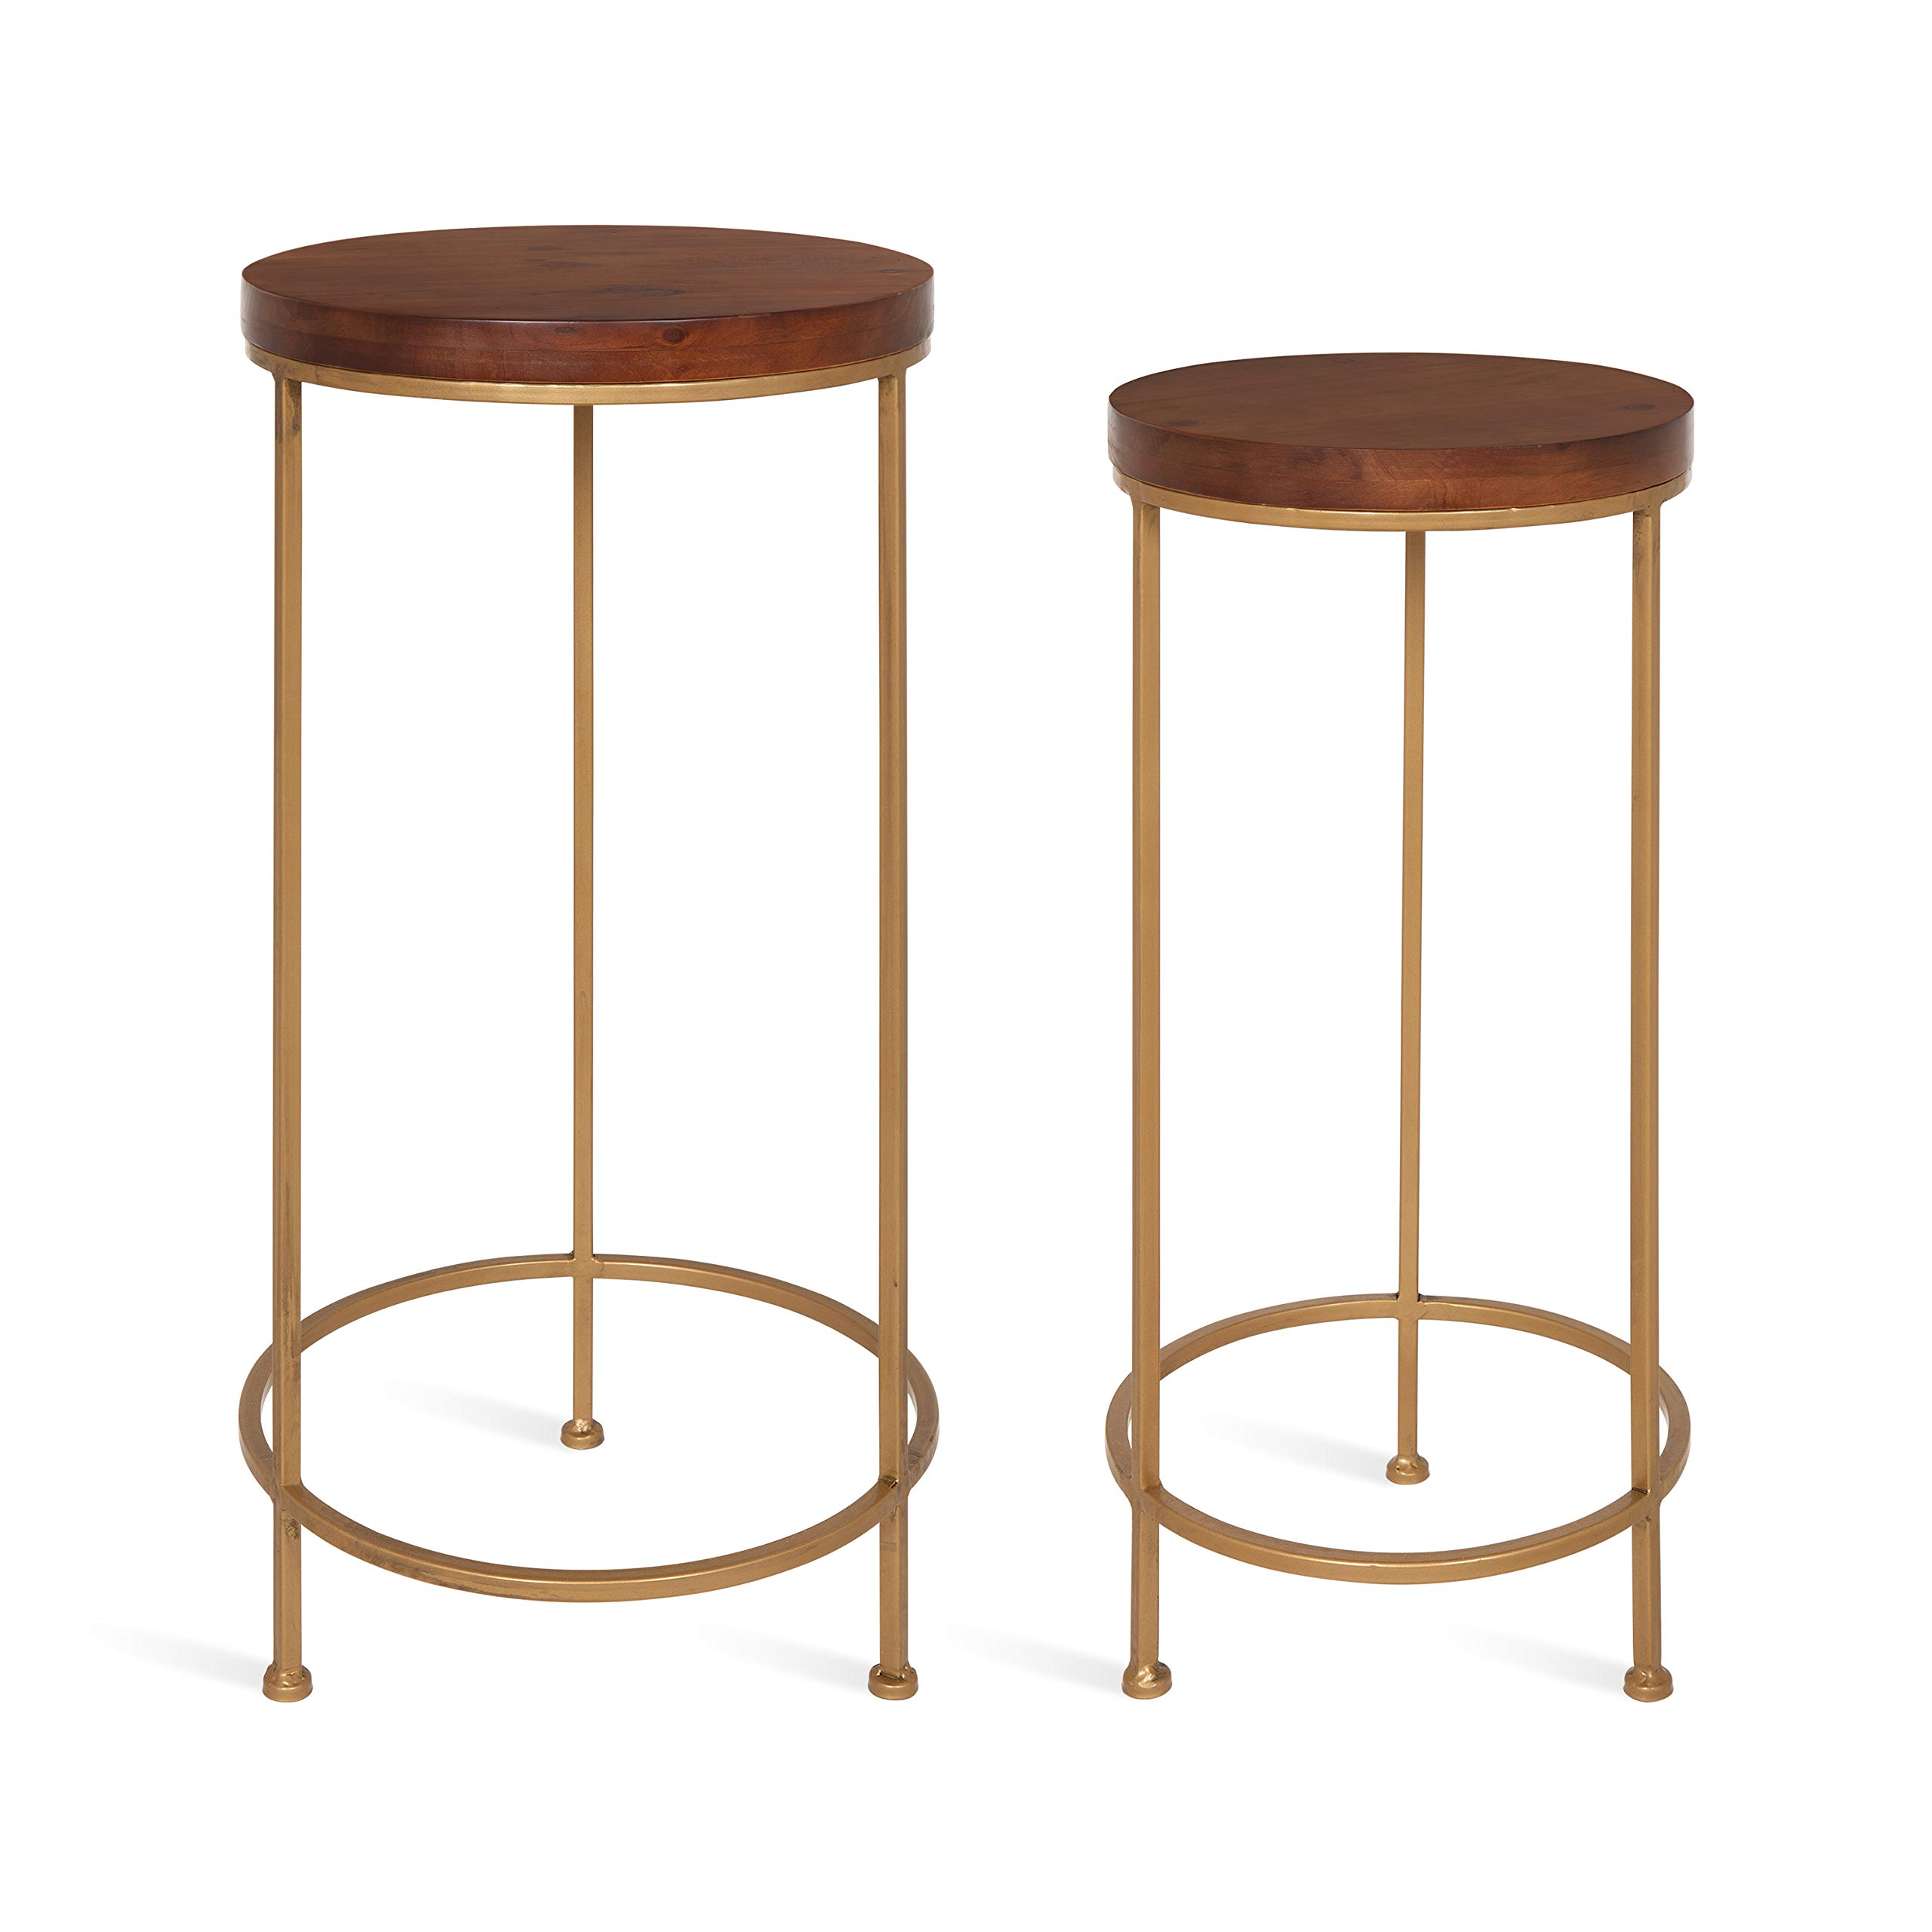 Kate and Laurel Espada Metal and Wood Nesting Tables 2 Piece Set, Walnut Top with Gold Base by Kate and Laurel